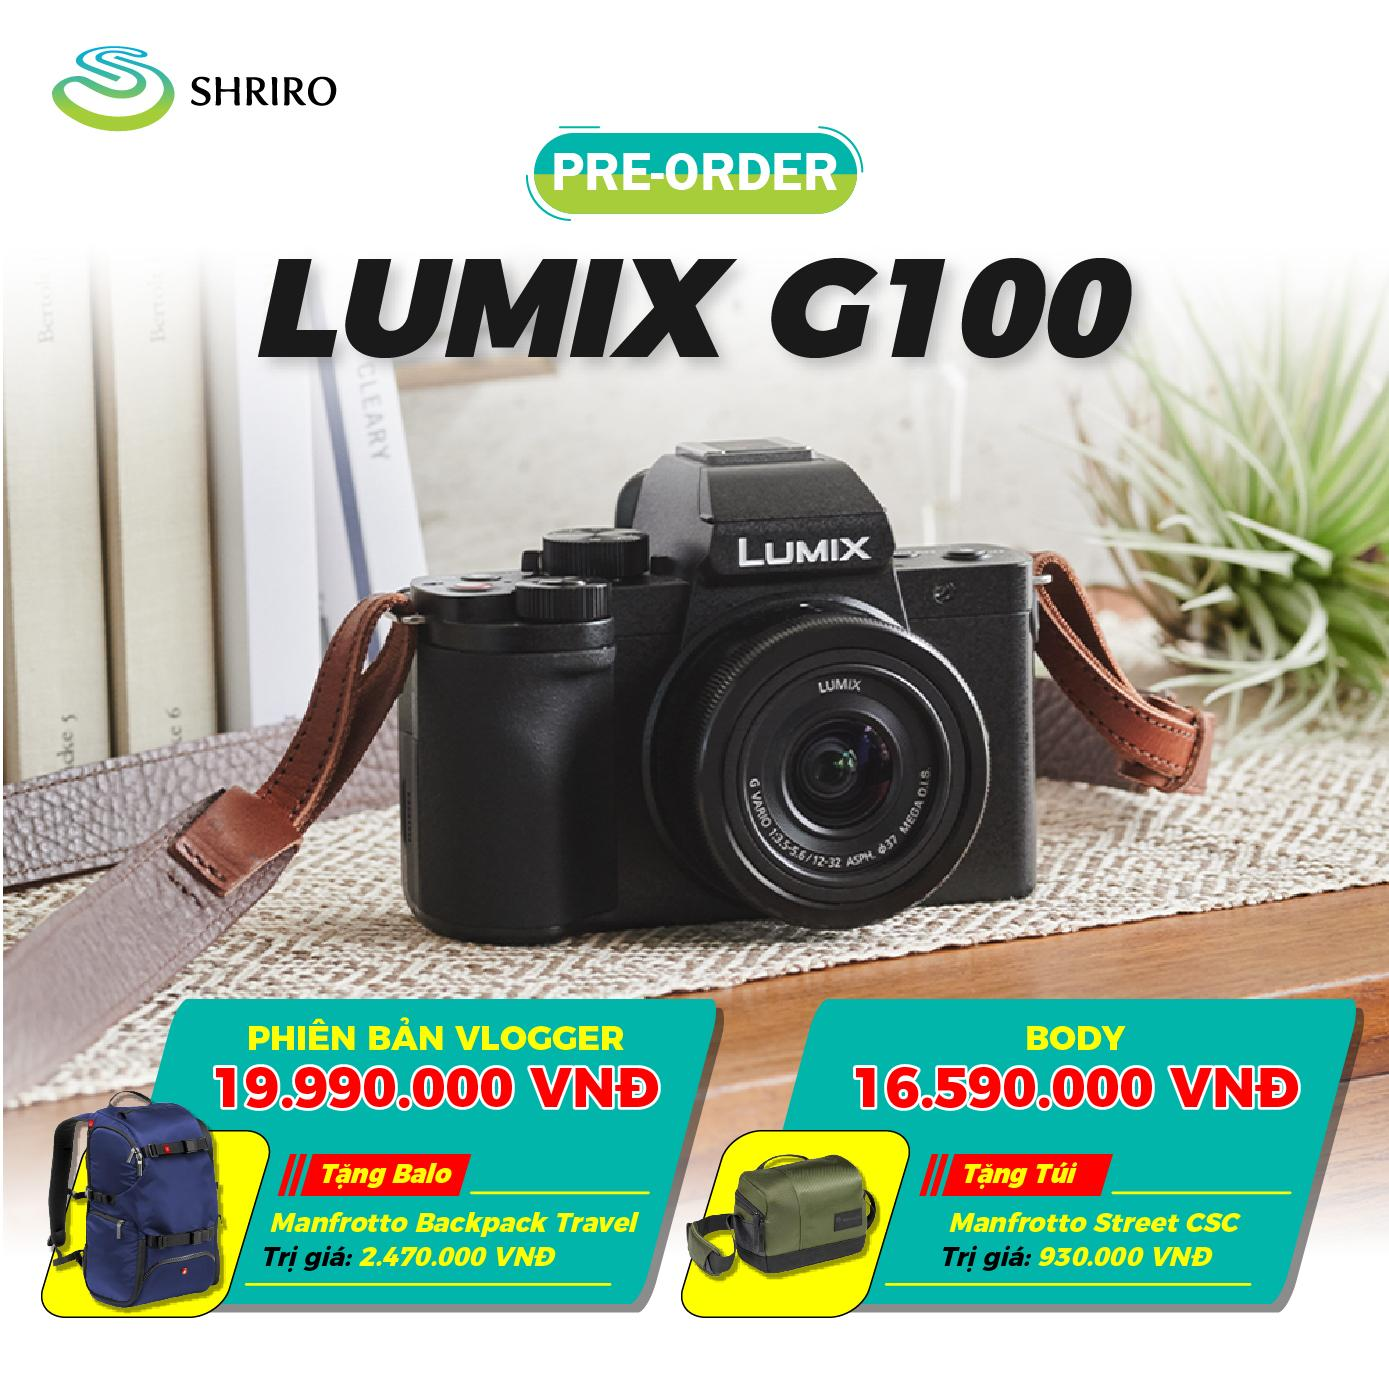 Panasonic Lumix G100 Kit